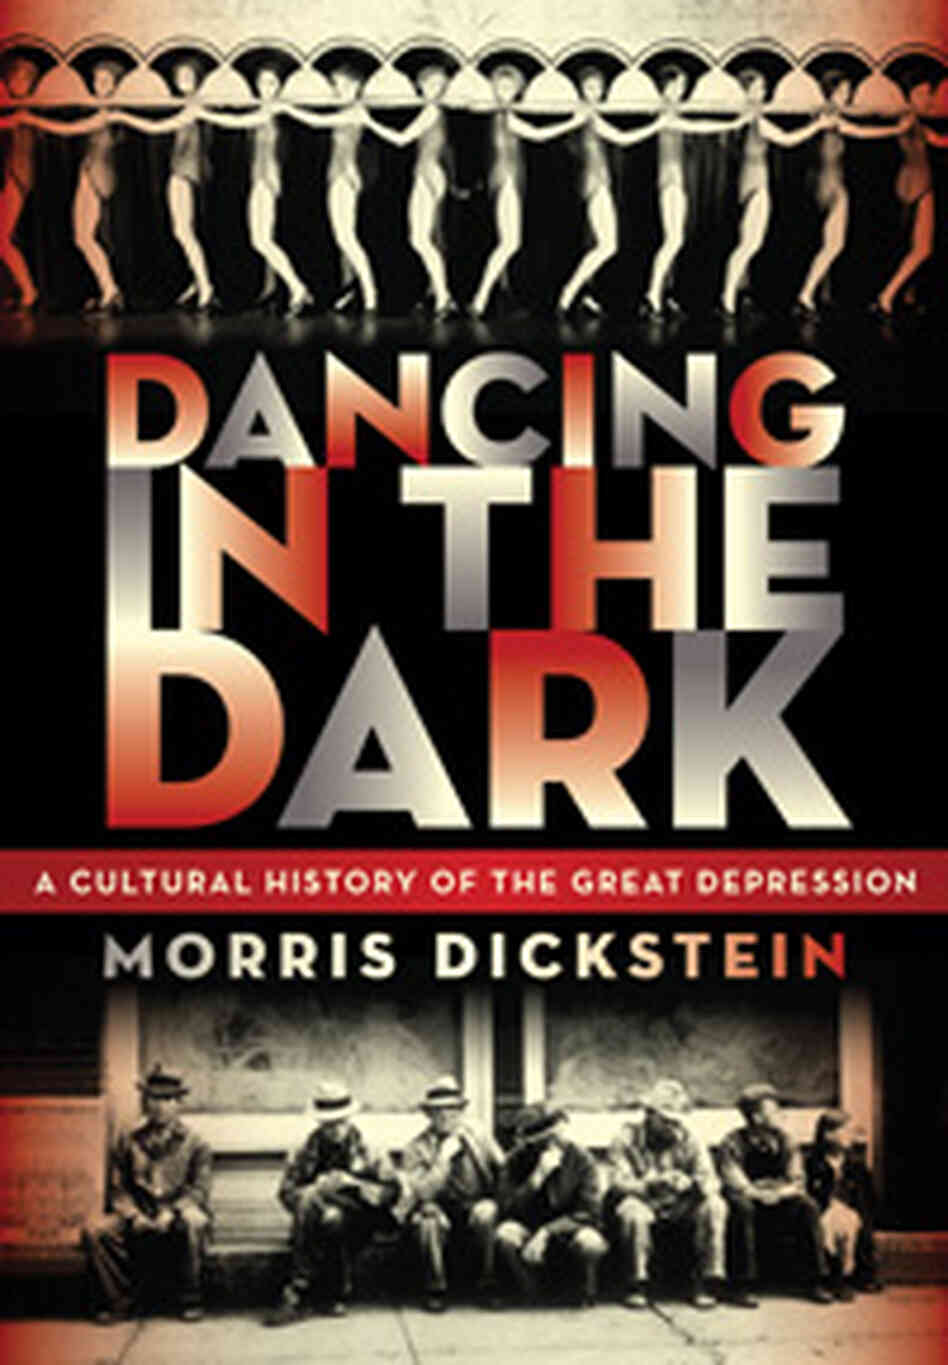 Cover, 'Dancing in the Dark' by Morris Dickstein